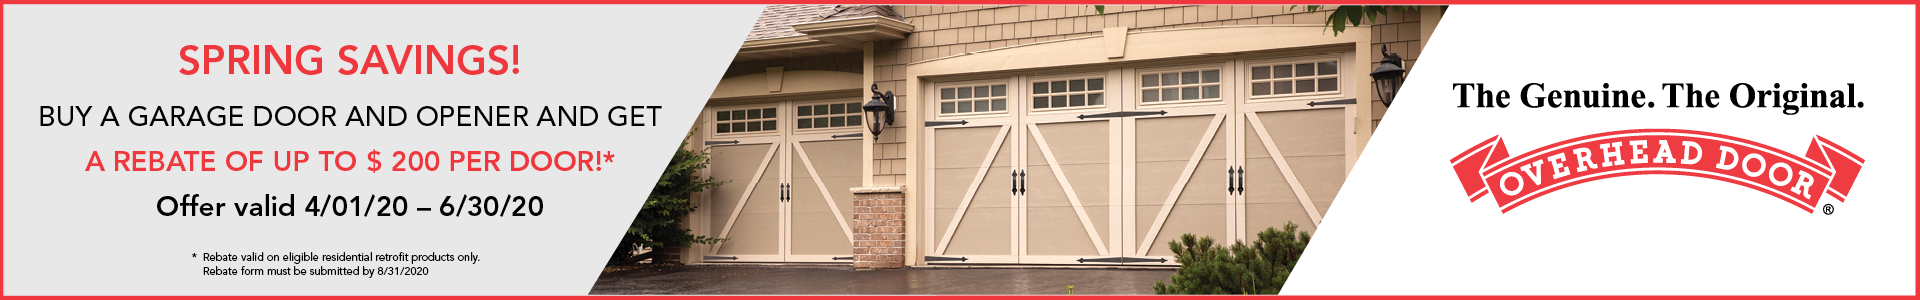 Overhead Door Rebate